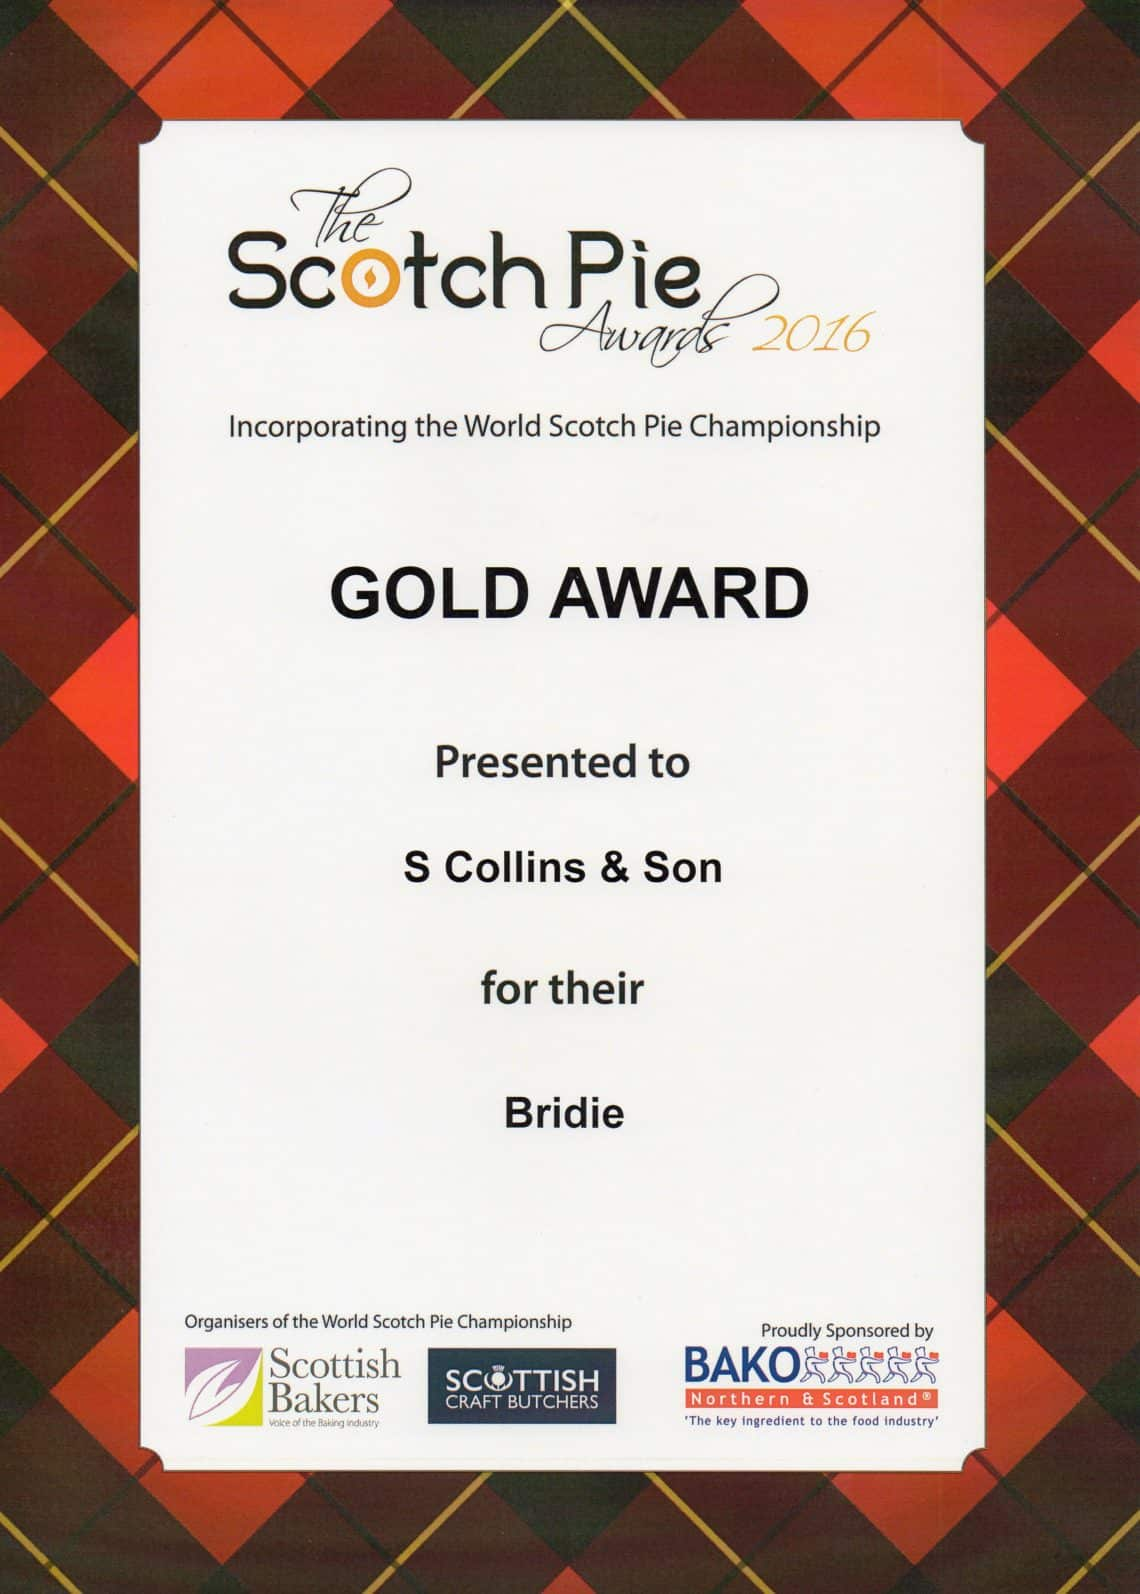 Scotch Pie 2016 Awards: Bridie